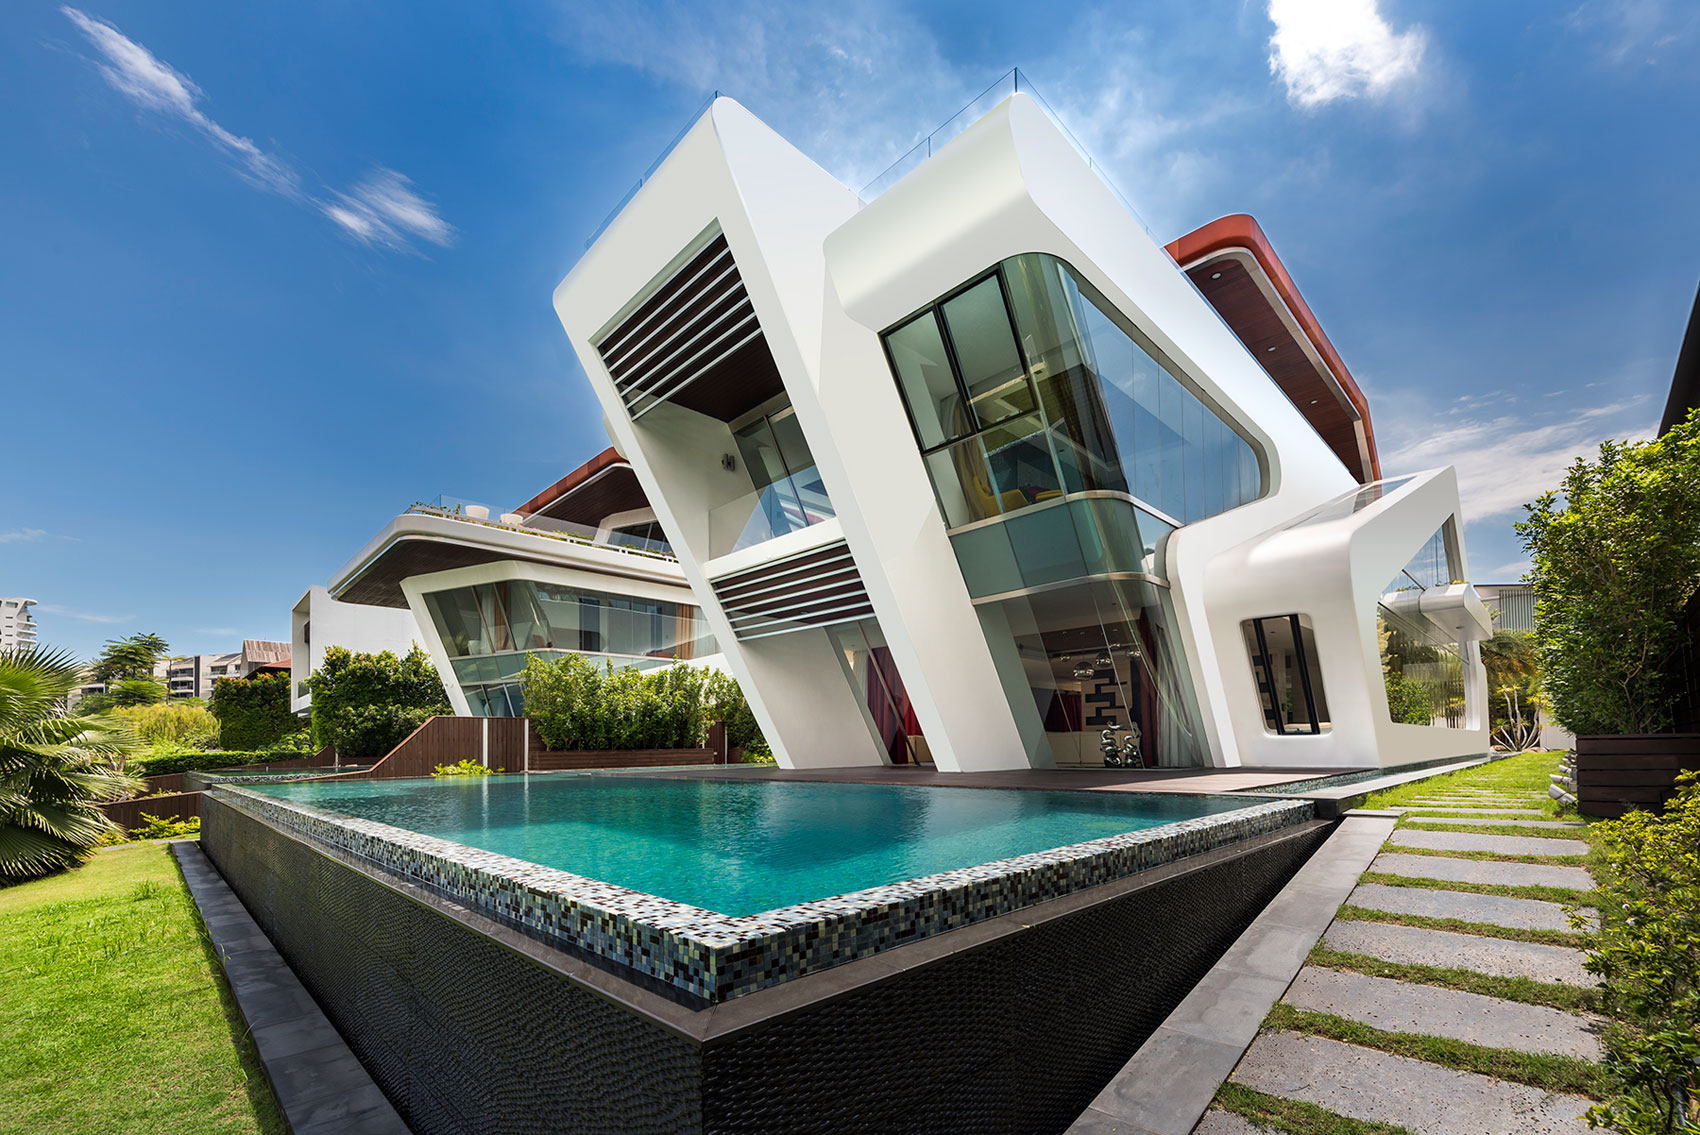 Mercurio design lab create a modern villa in singapore for What is a modern house